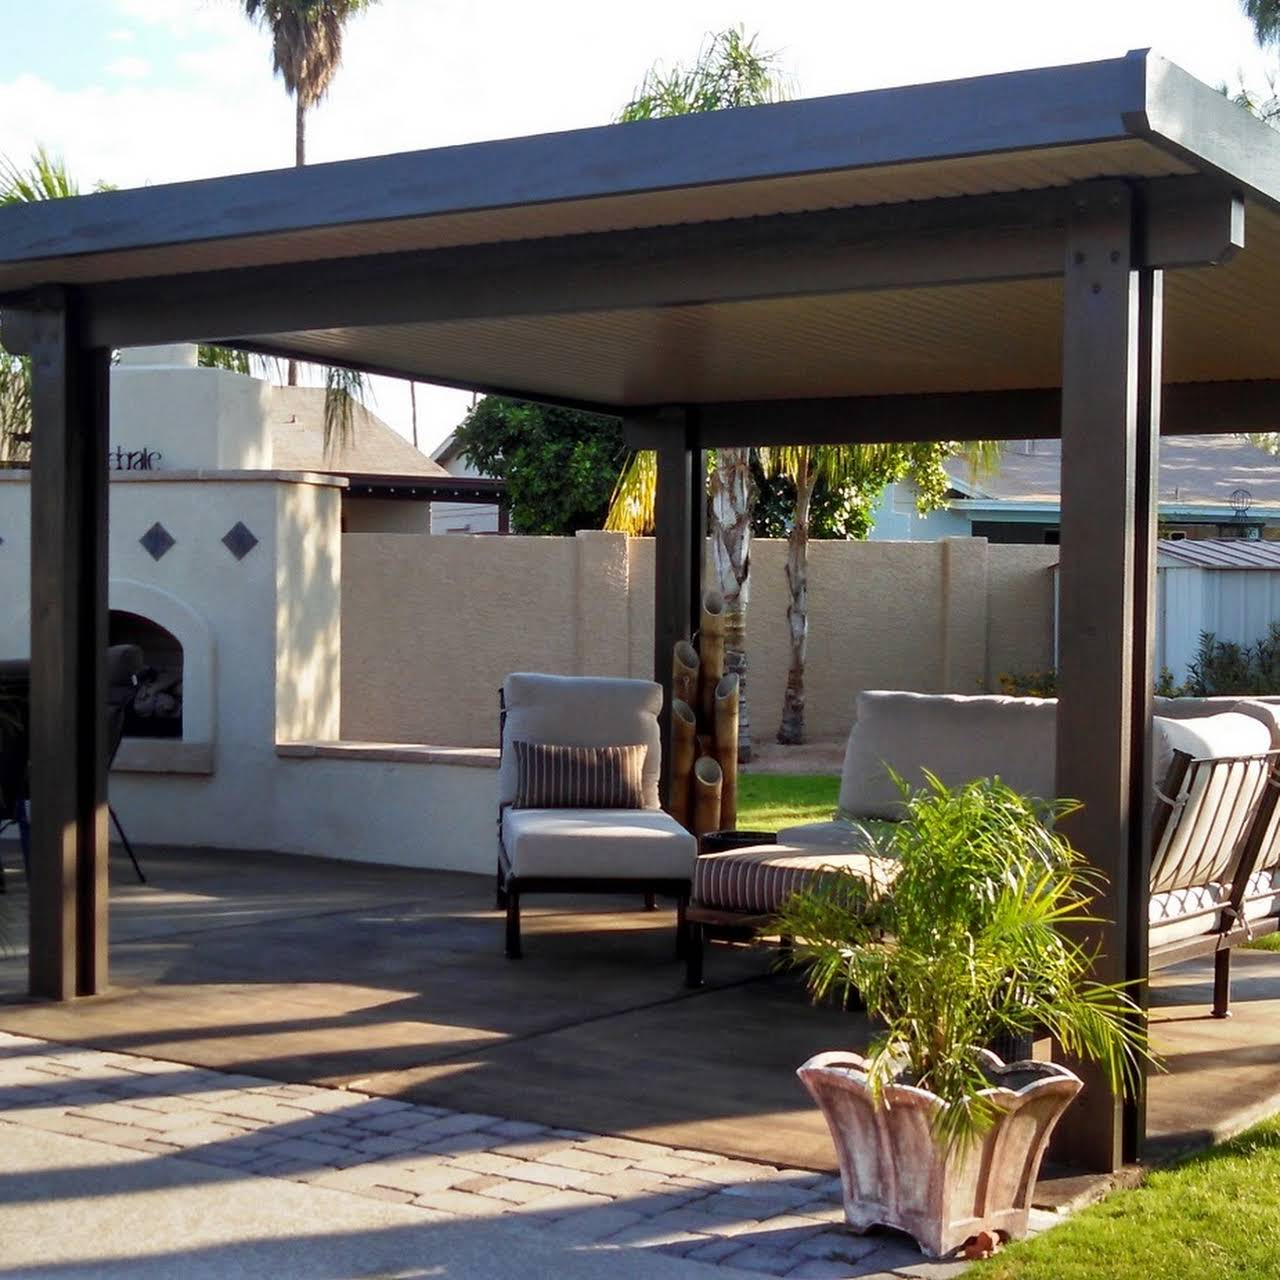 Go Patio Covers And Enclosures Patio Enclosure And Covers Around